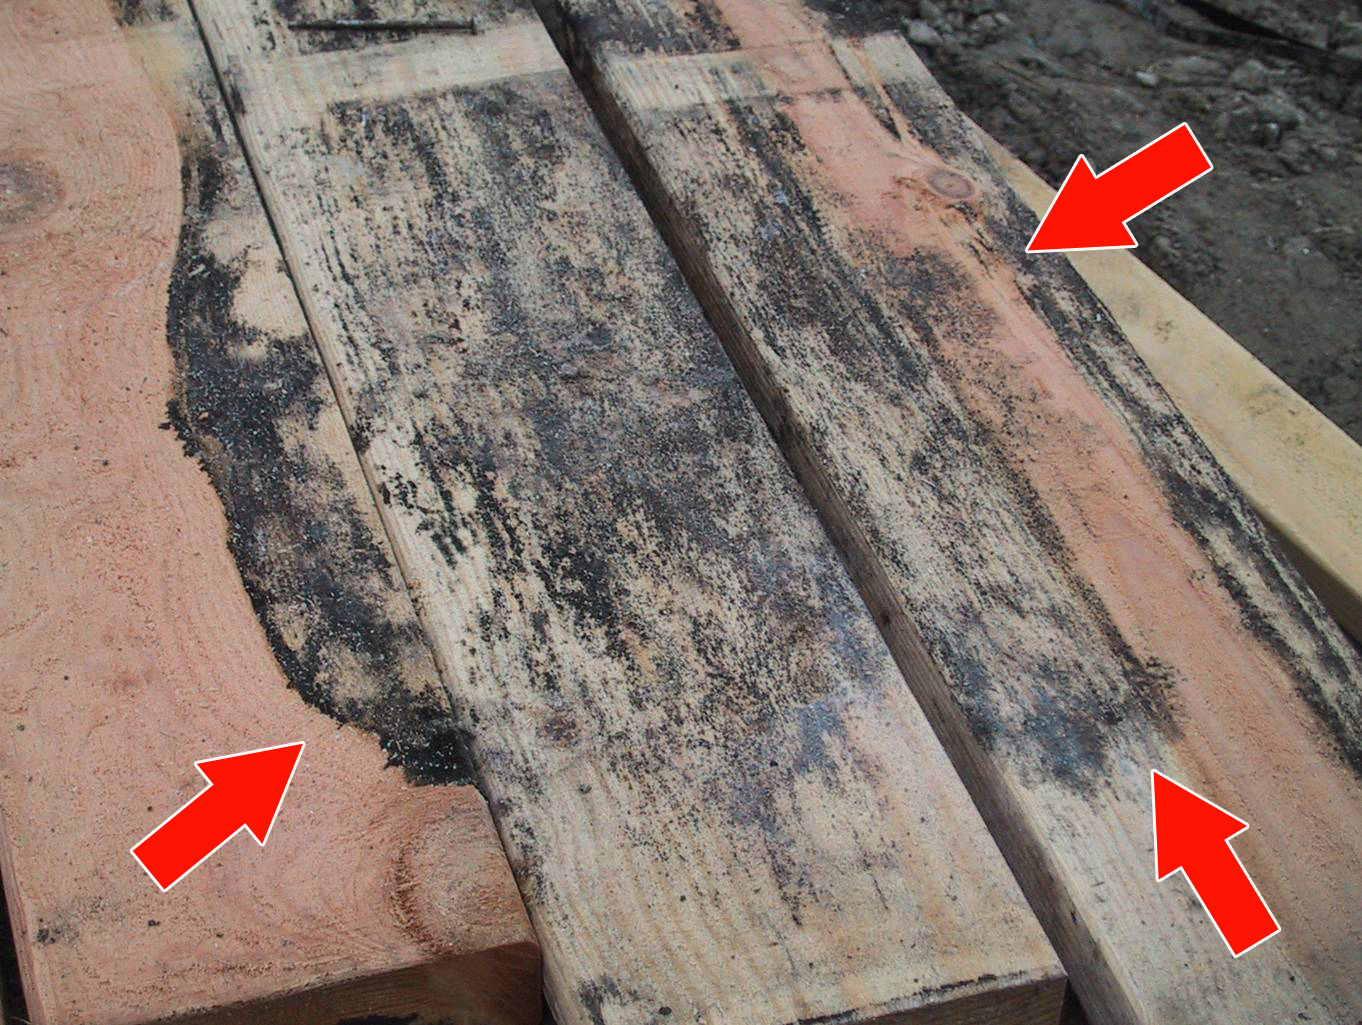 Lumber with Visible Mold Should Be Avoided